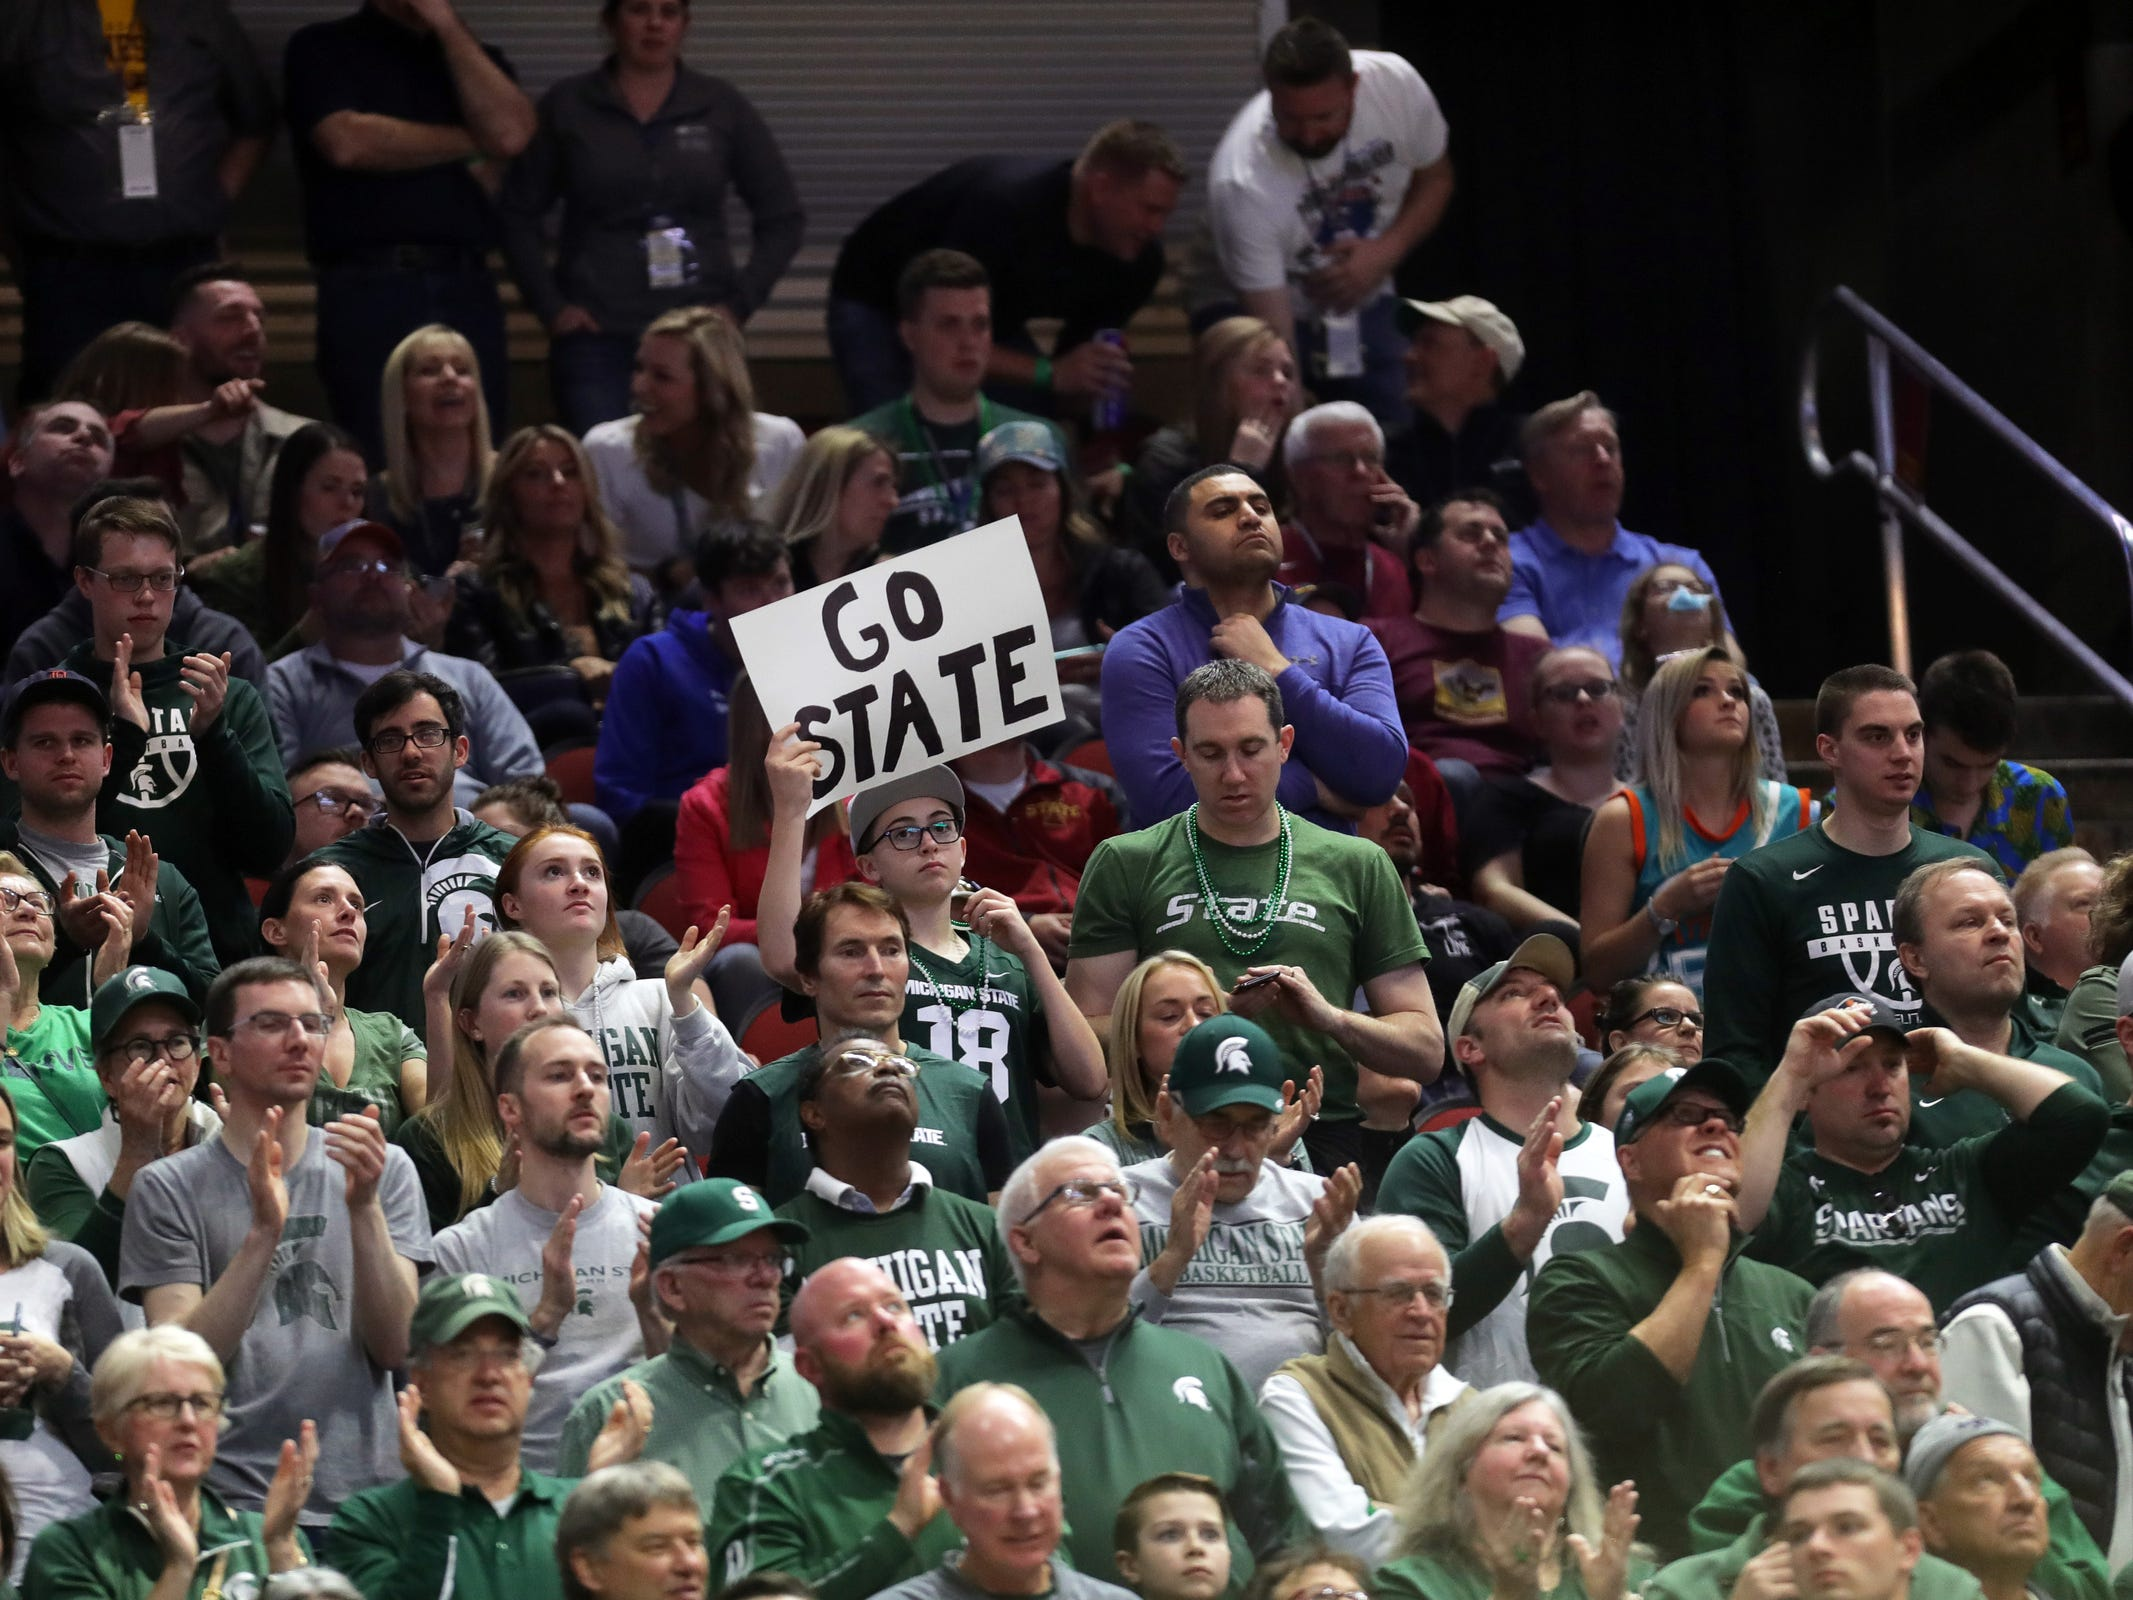 Michigan State fans cheer during the second half of the 70-50 win against Minnesota, Saturday, March 23, 2019 at Wells Fargo Arena in Des Moines, Iowa.